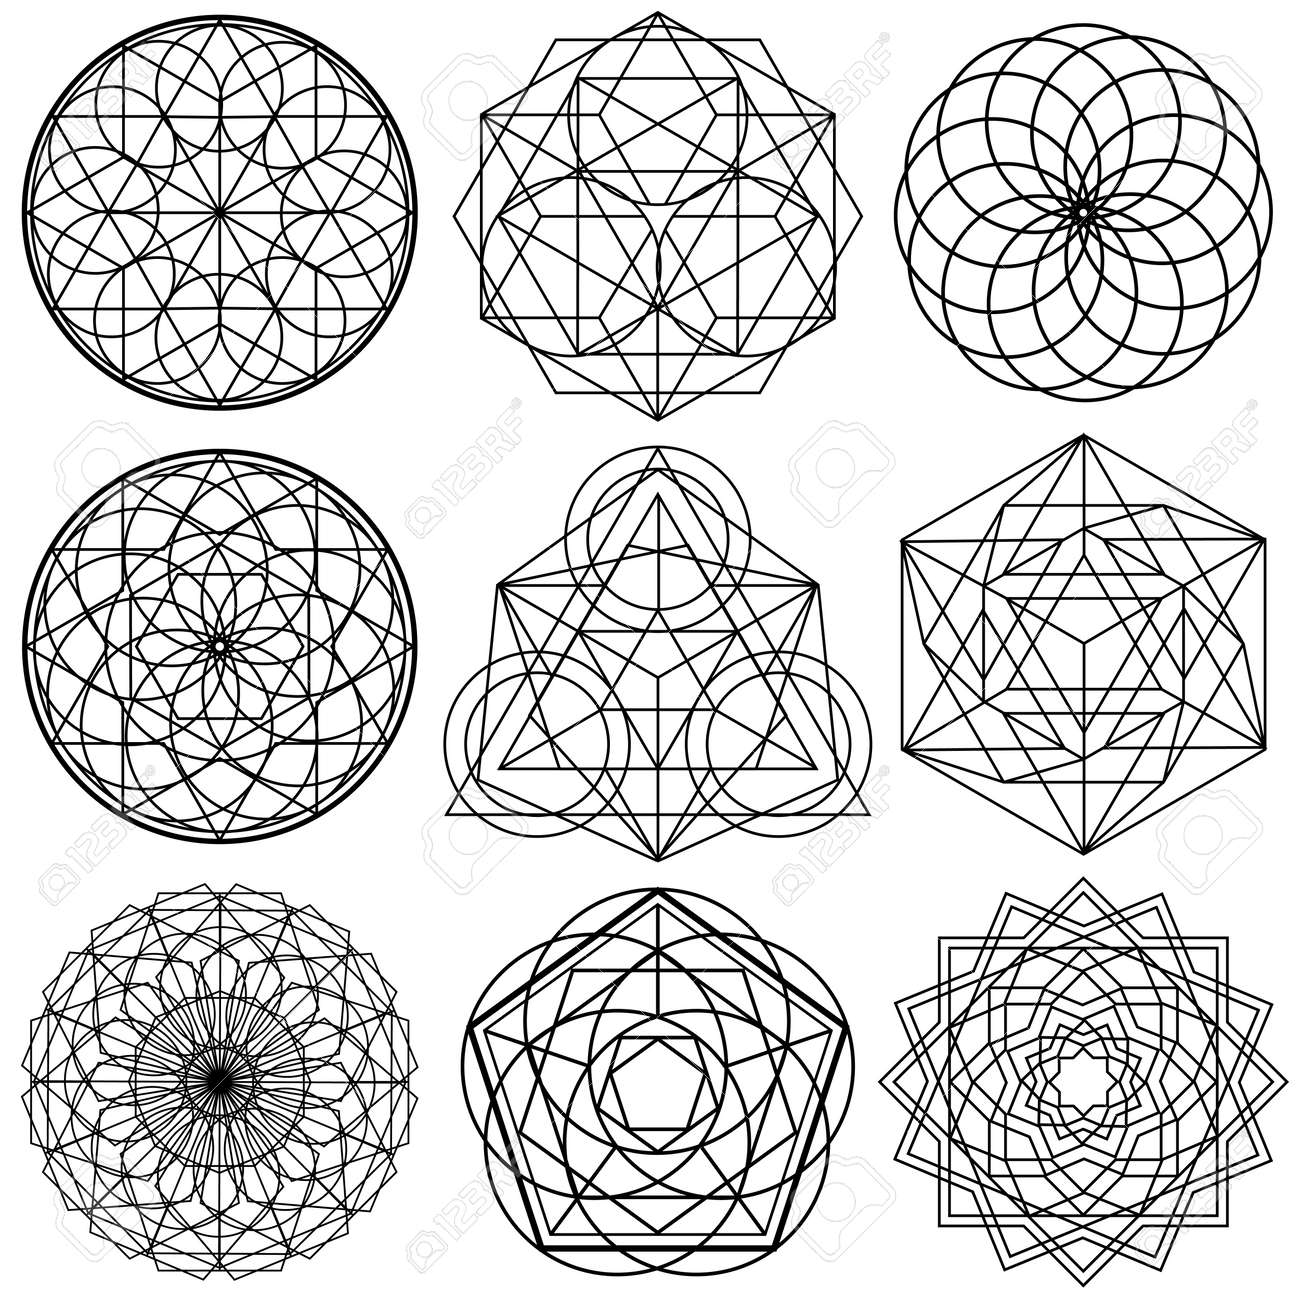 Sacred geometry symbols vector set 02 royalty free cliparts sacred geometry symbols vector set 02 stock vector 70872914 buycottarizona